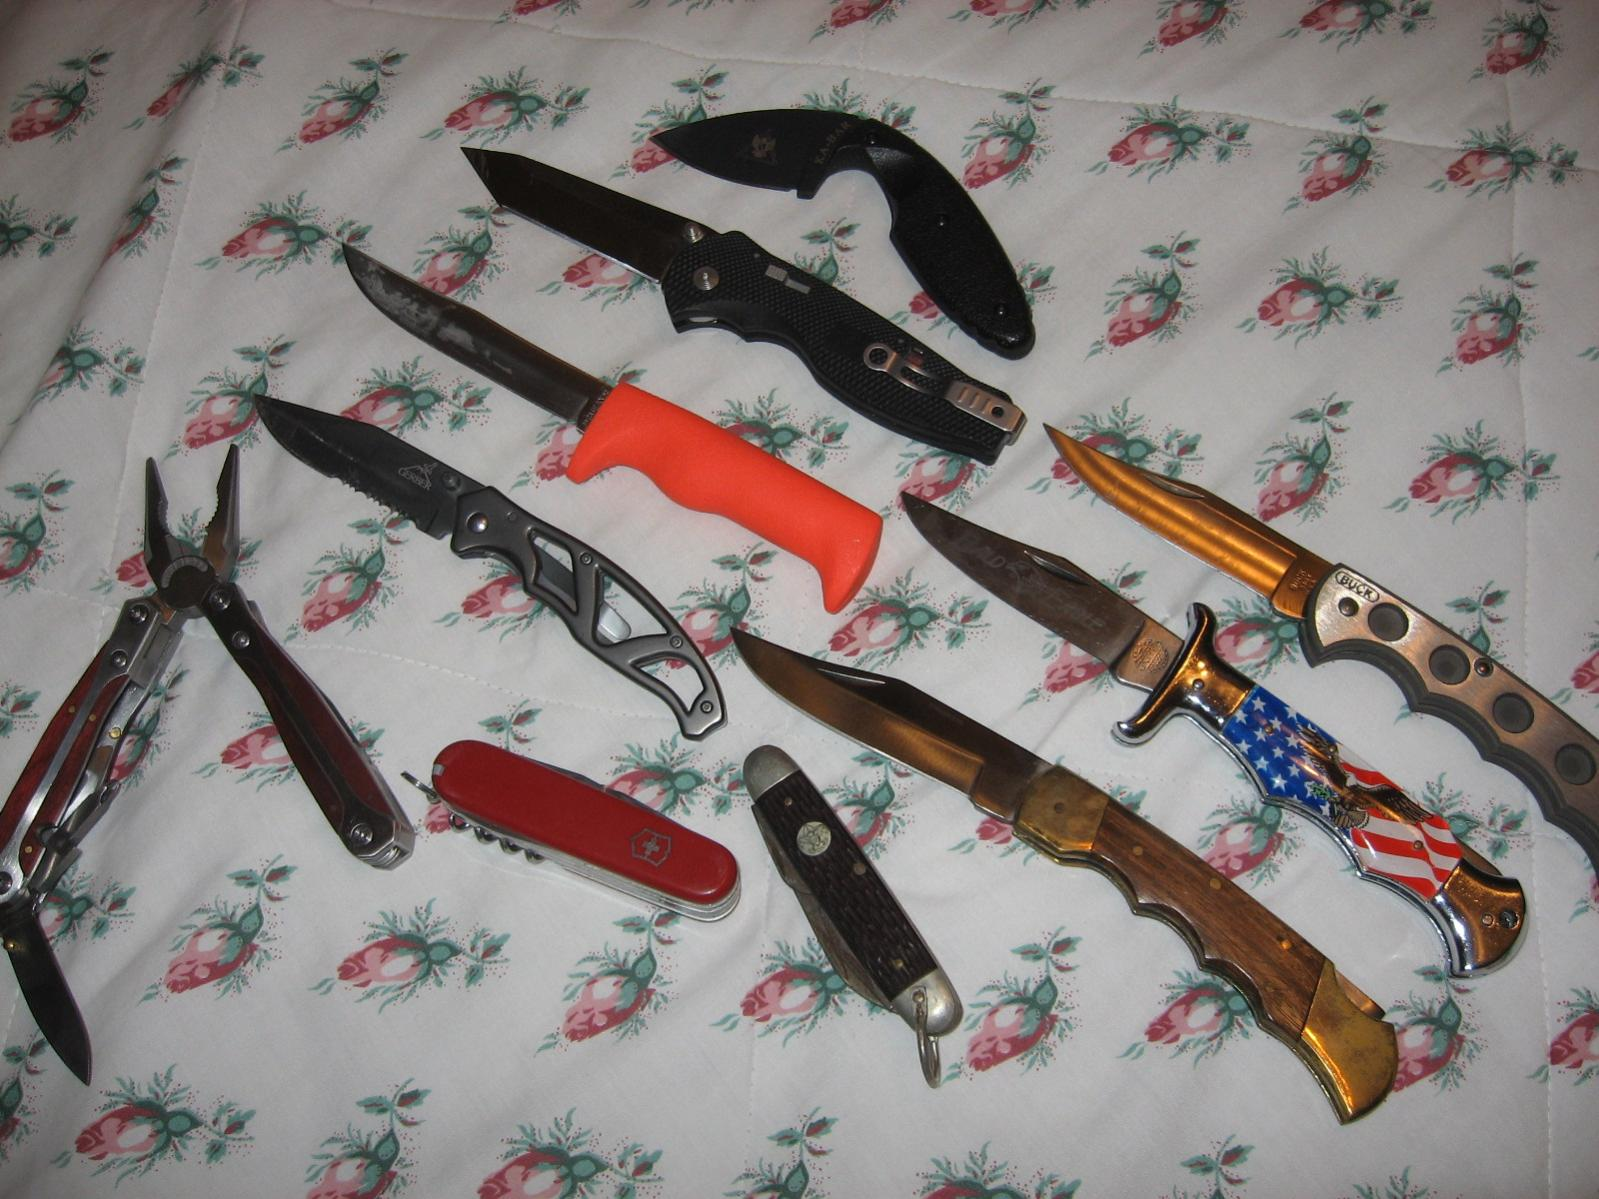 Let's See Your Knife Collection-img_2753.jpg